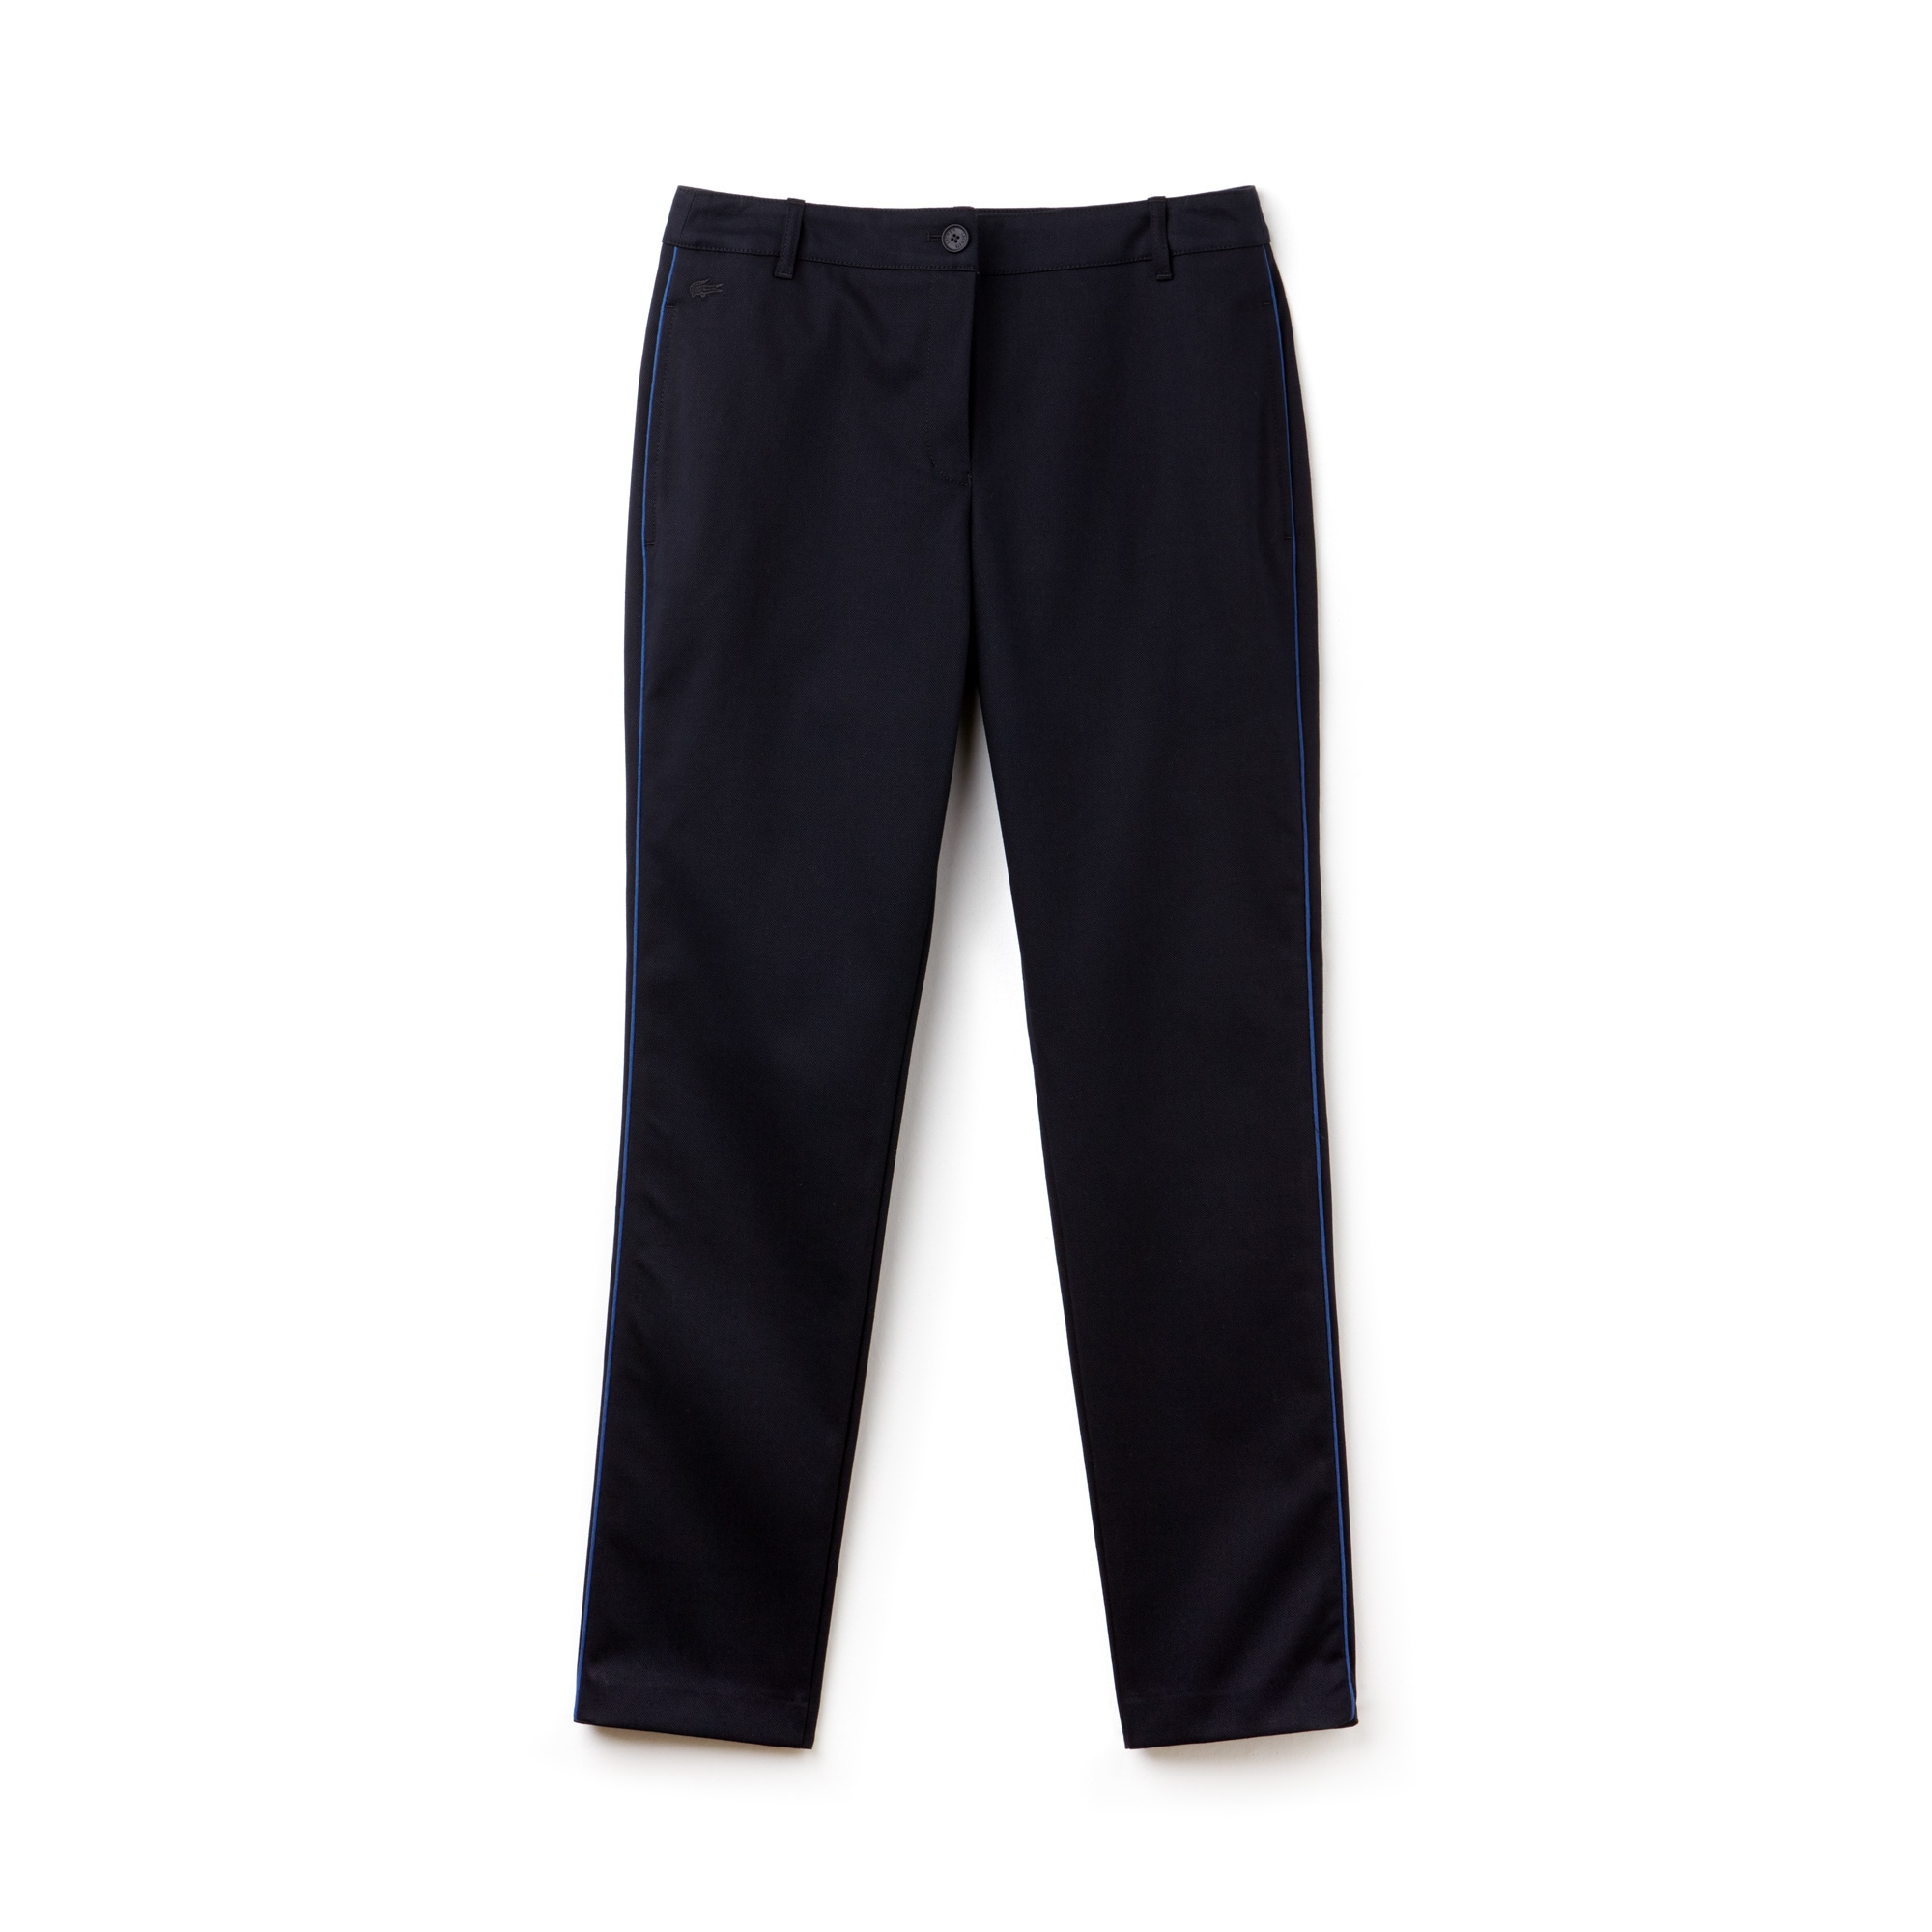 Women's Carrot Fit Piping Stretch Piqué Chino